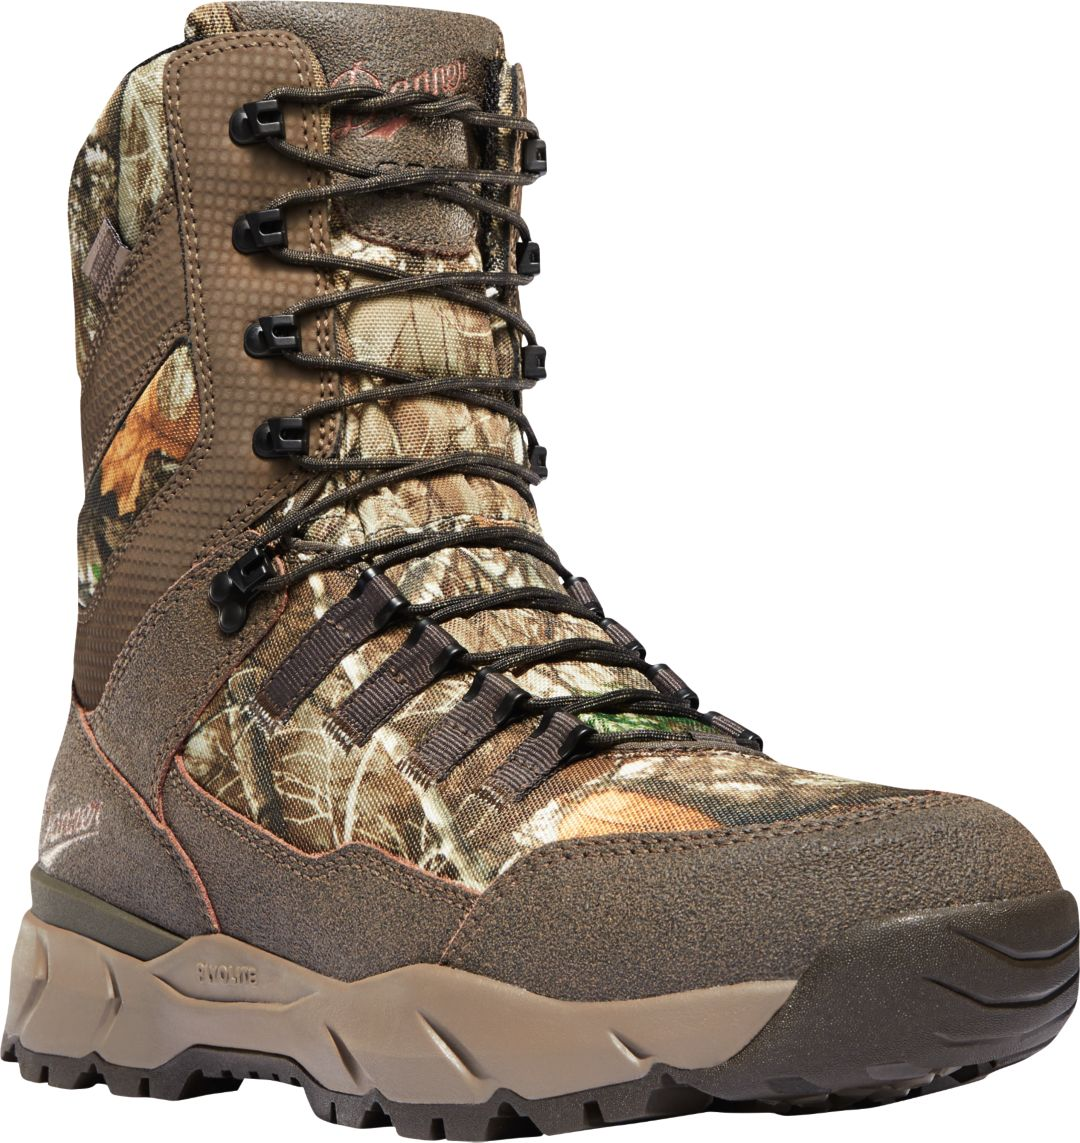 Danner Hunting Boots Clearance